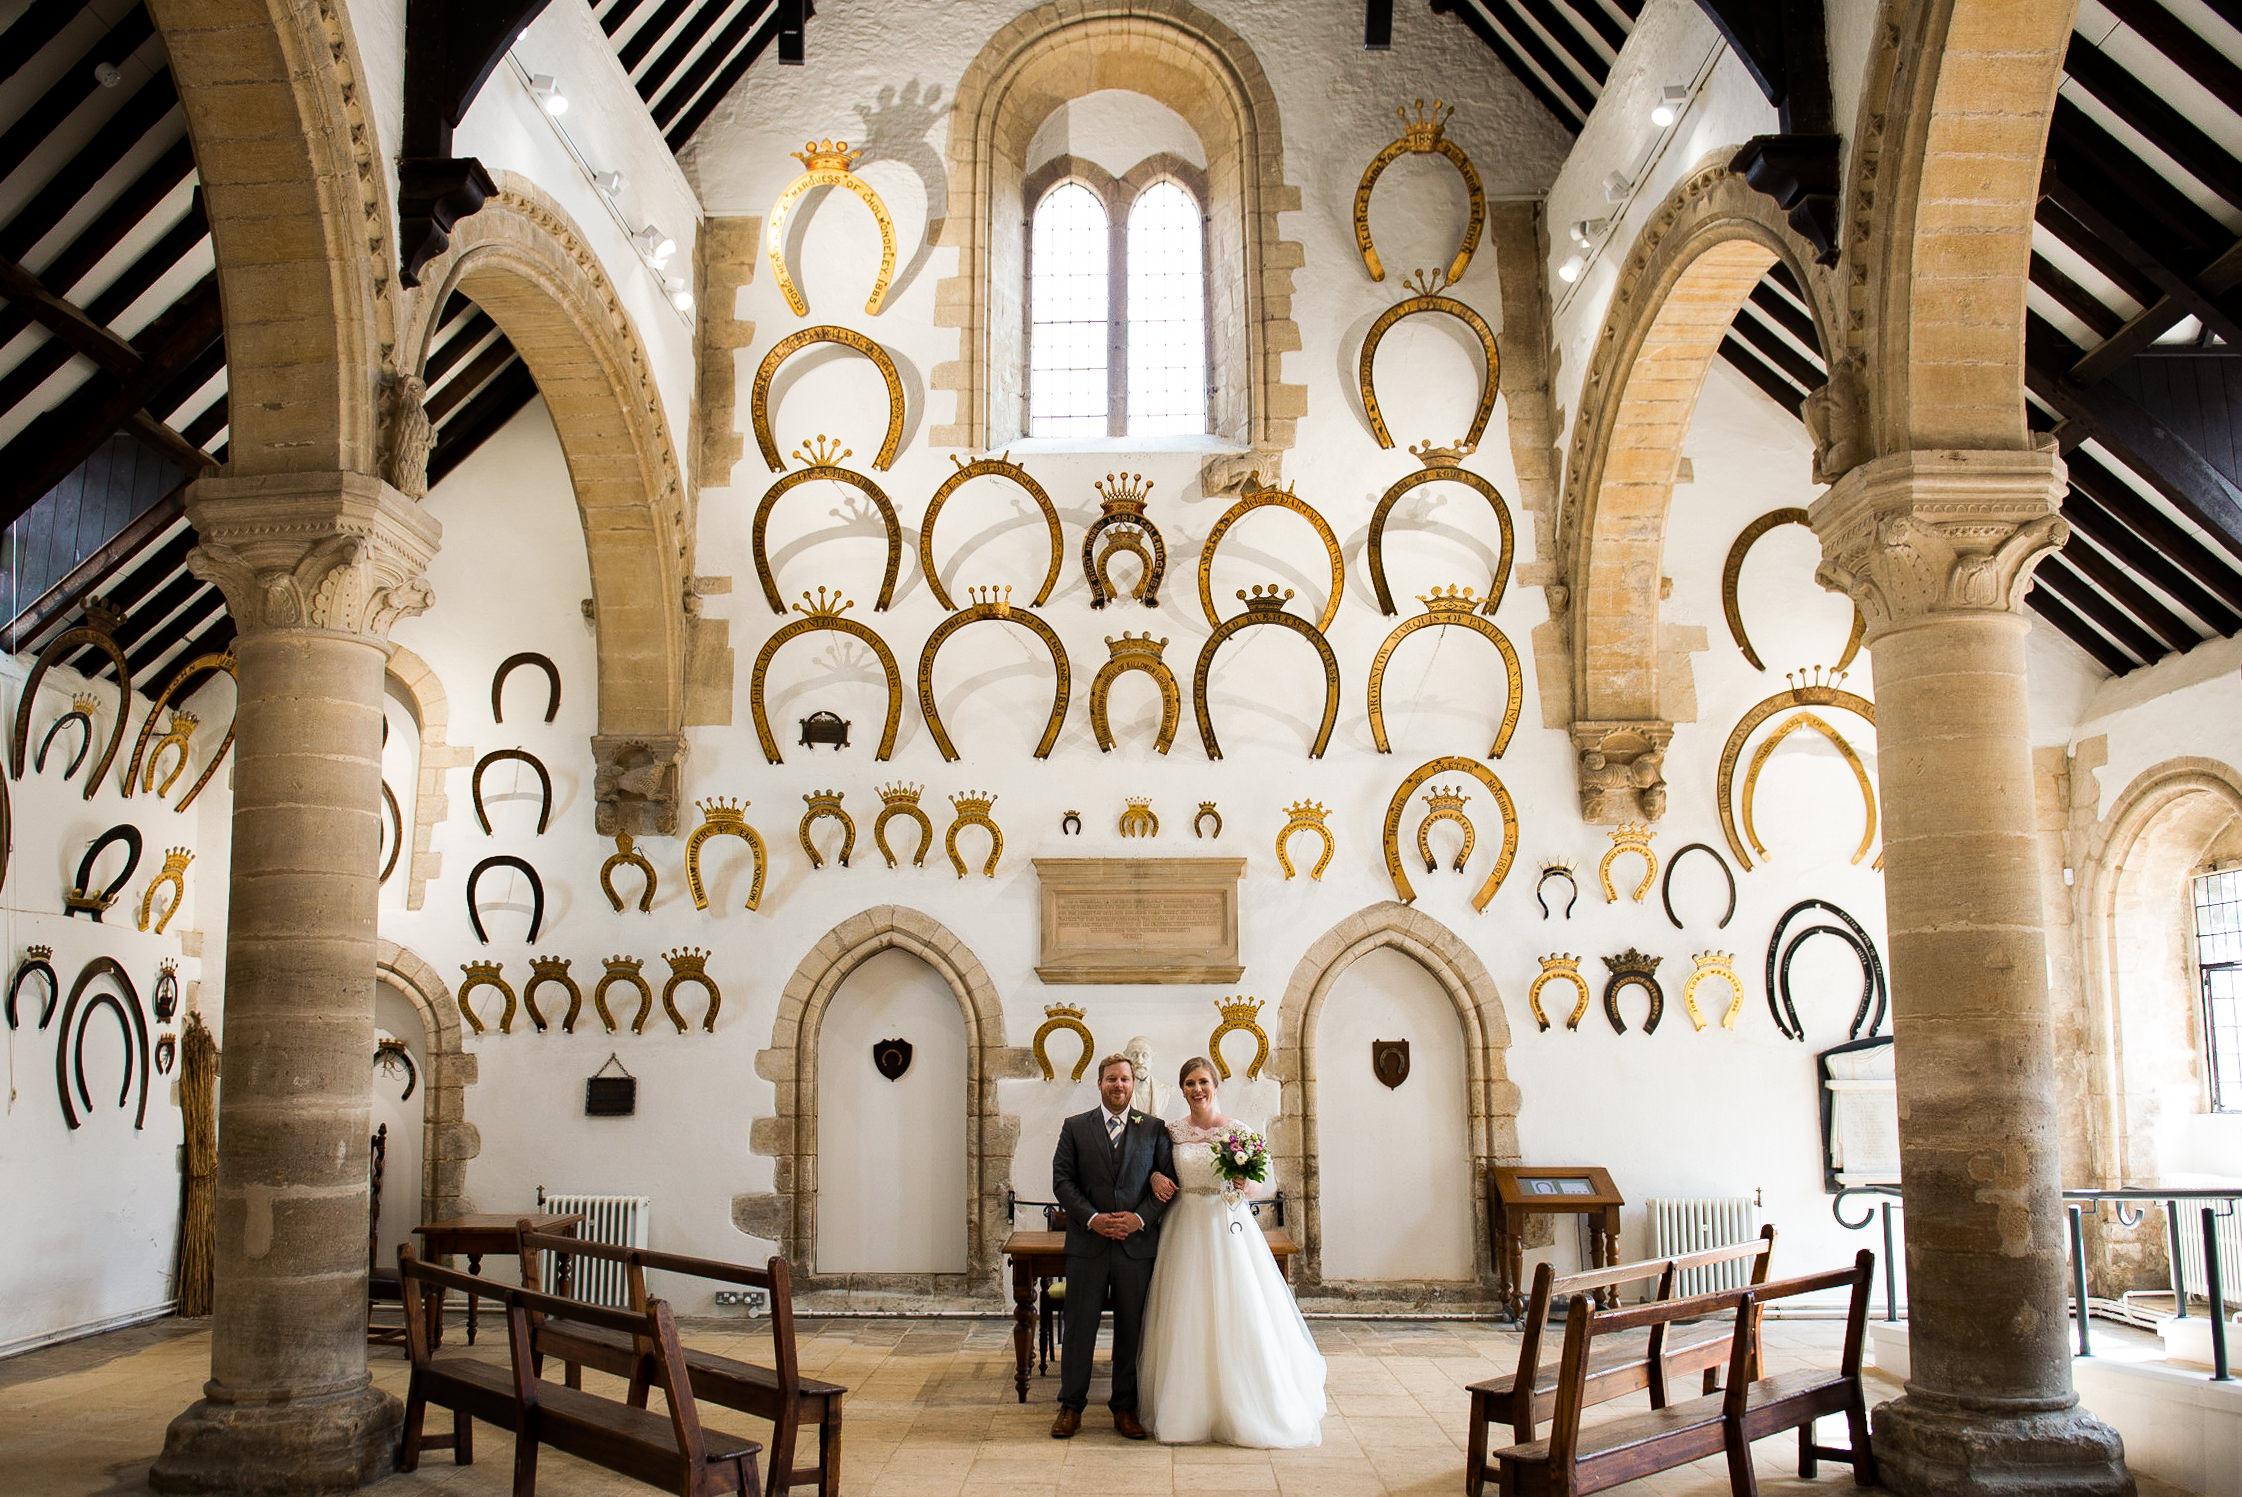 Oakham Castle wedding